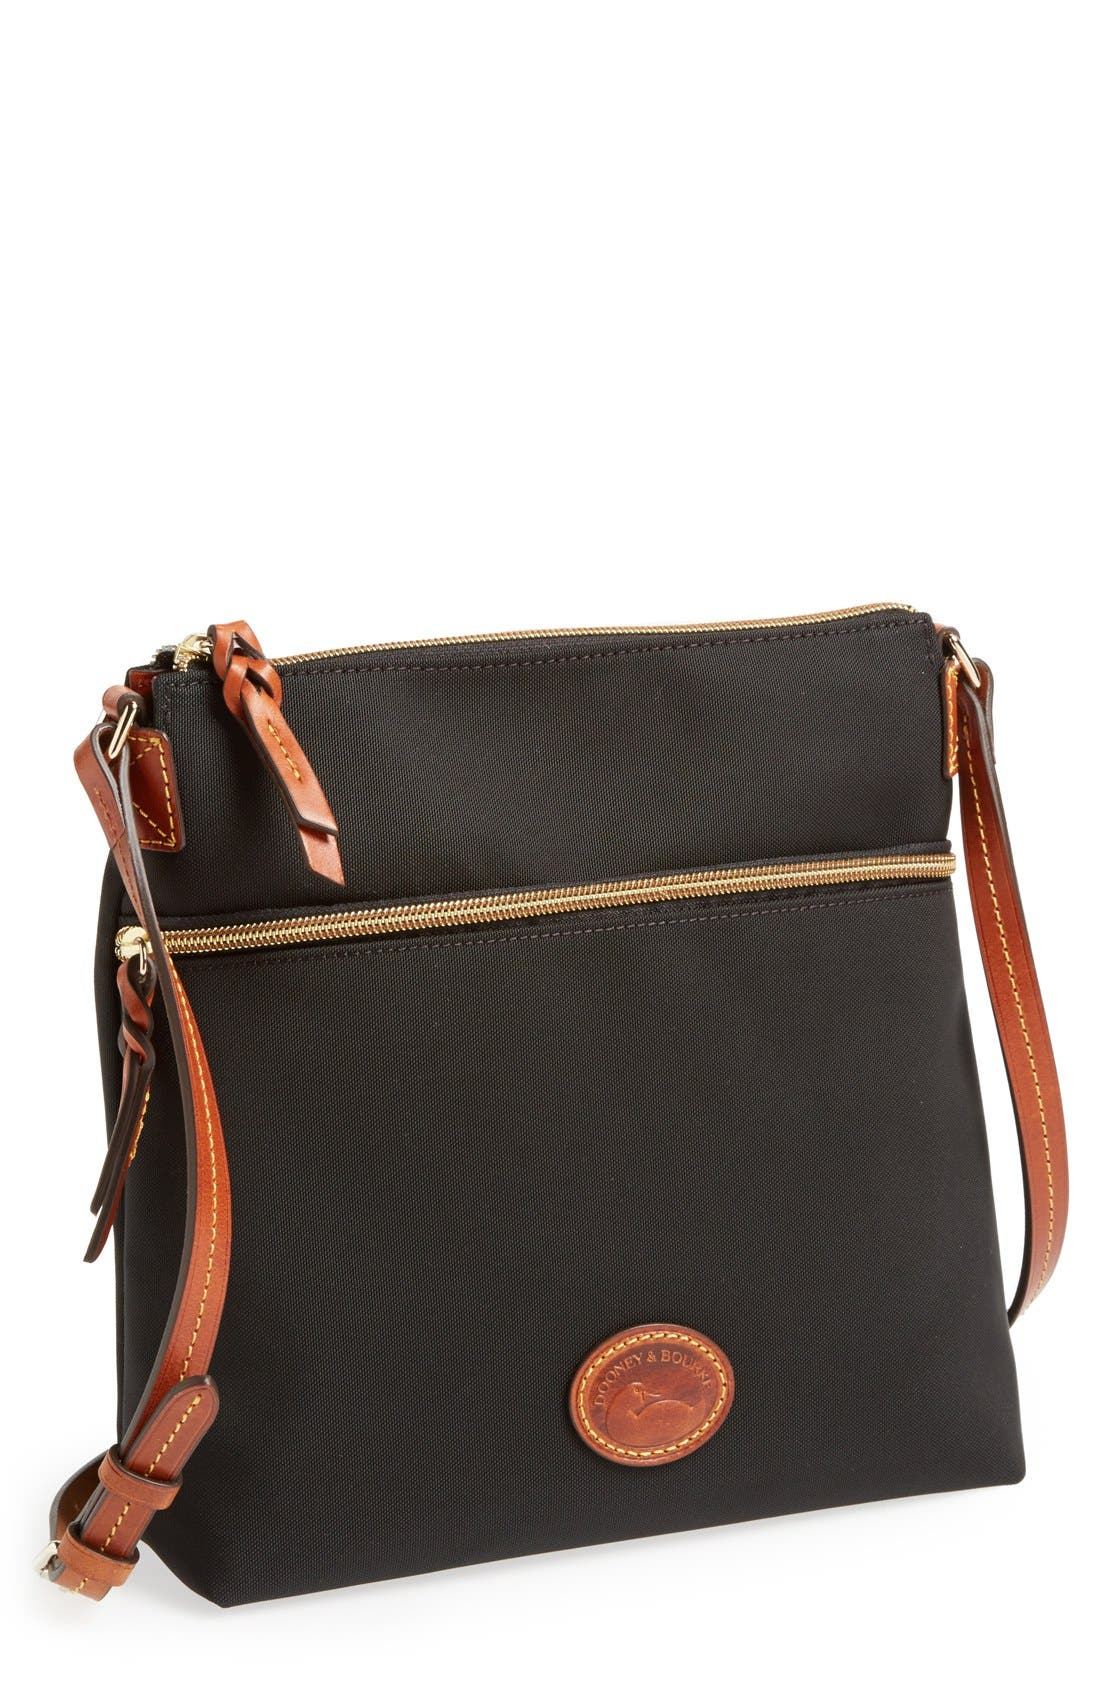 Main Image - Dooney & Bourke Crossbody Bag